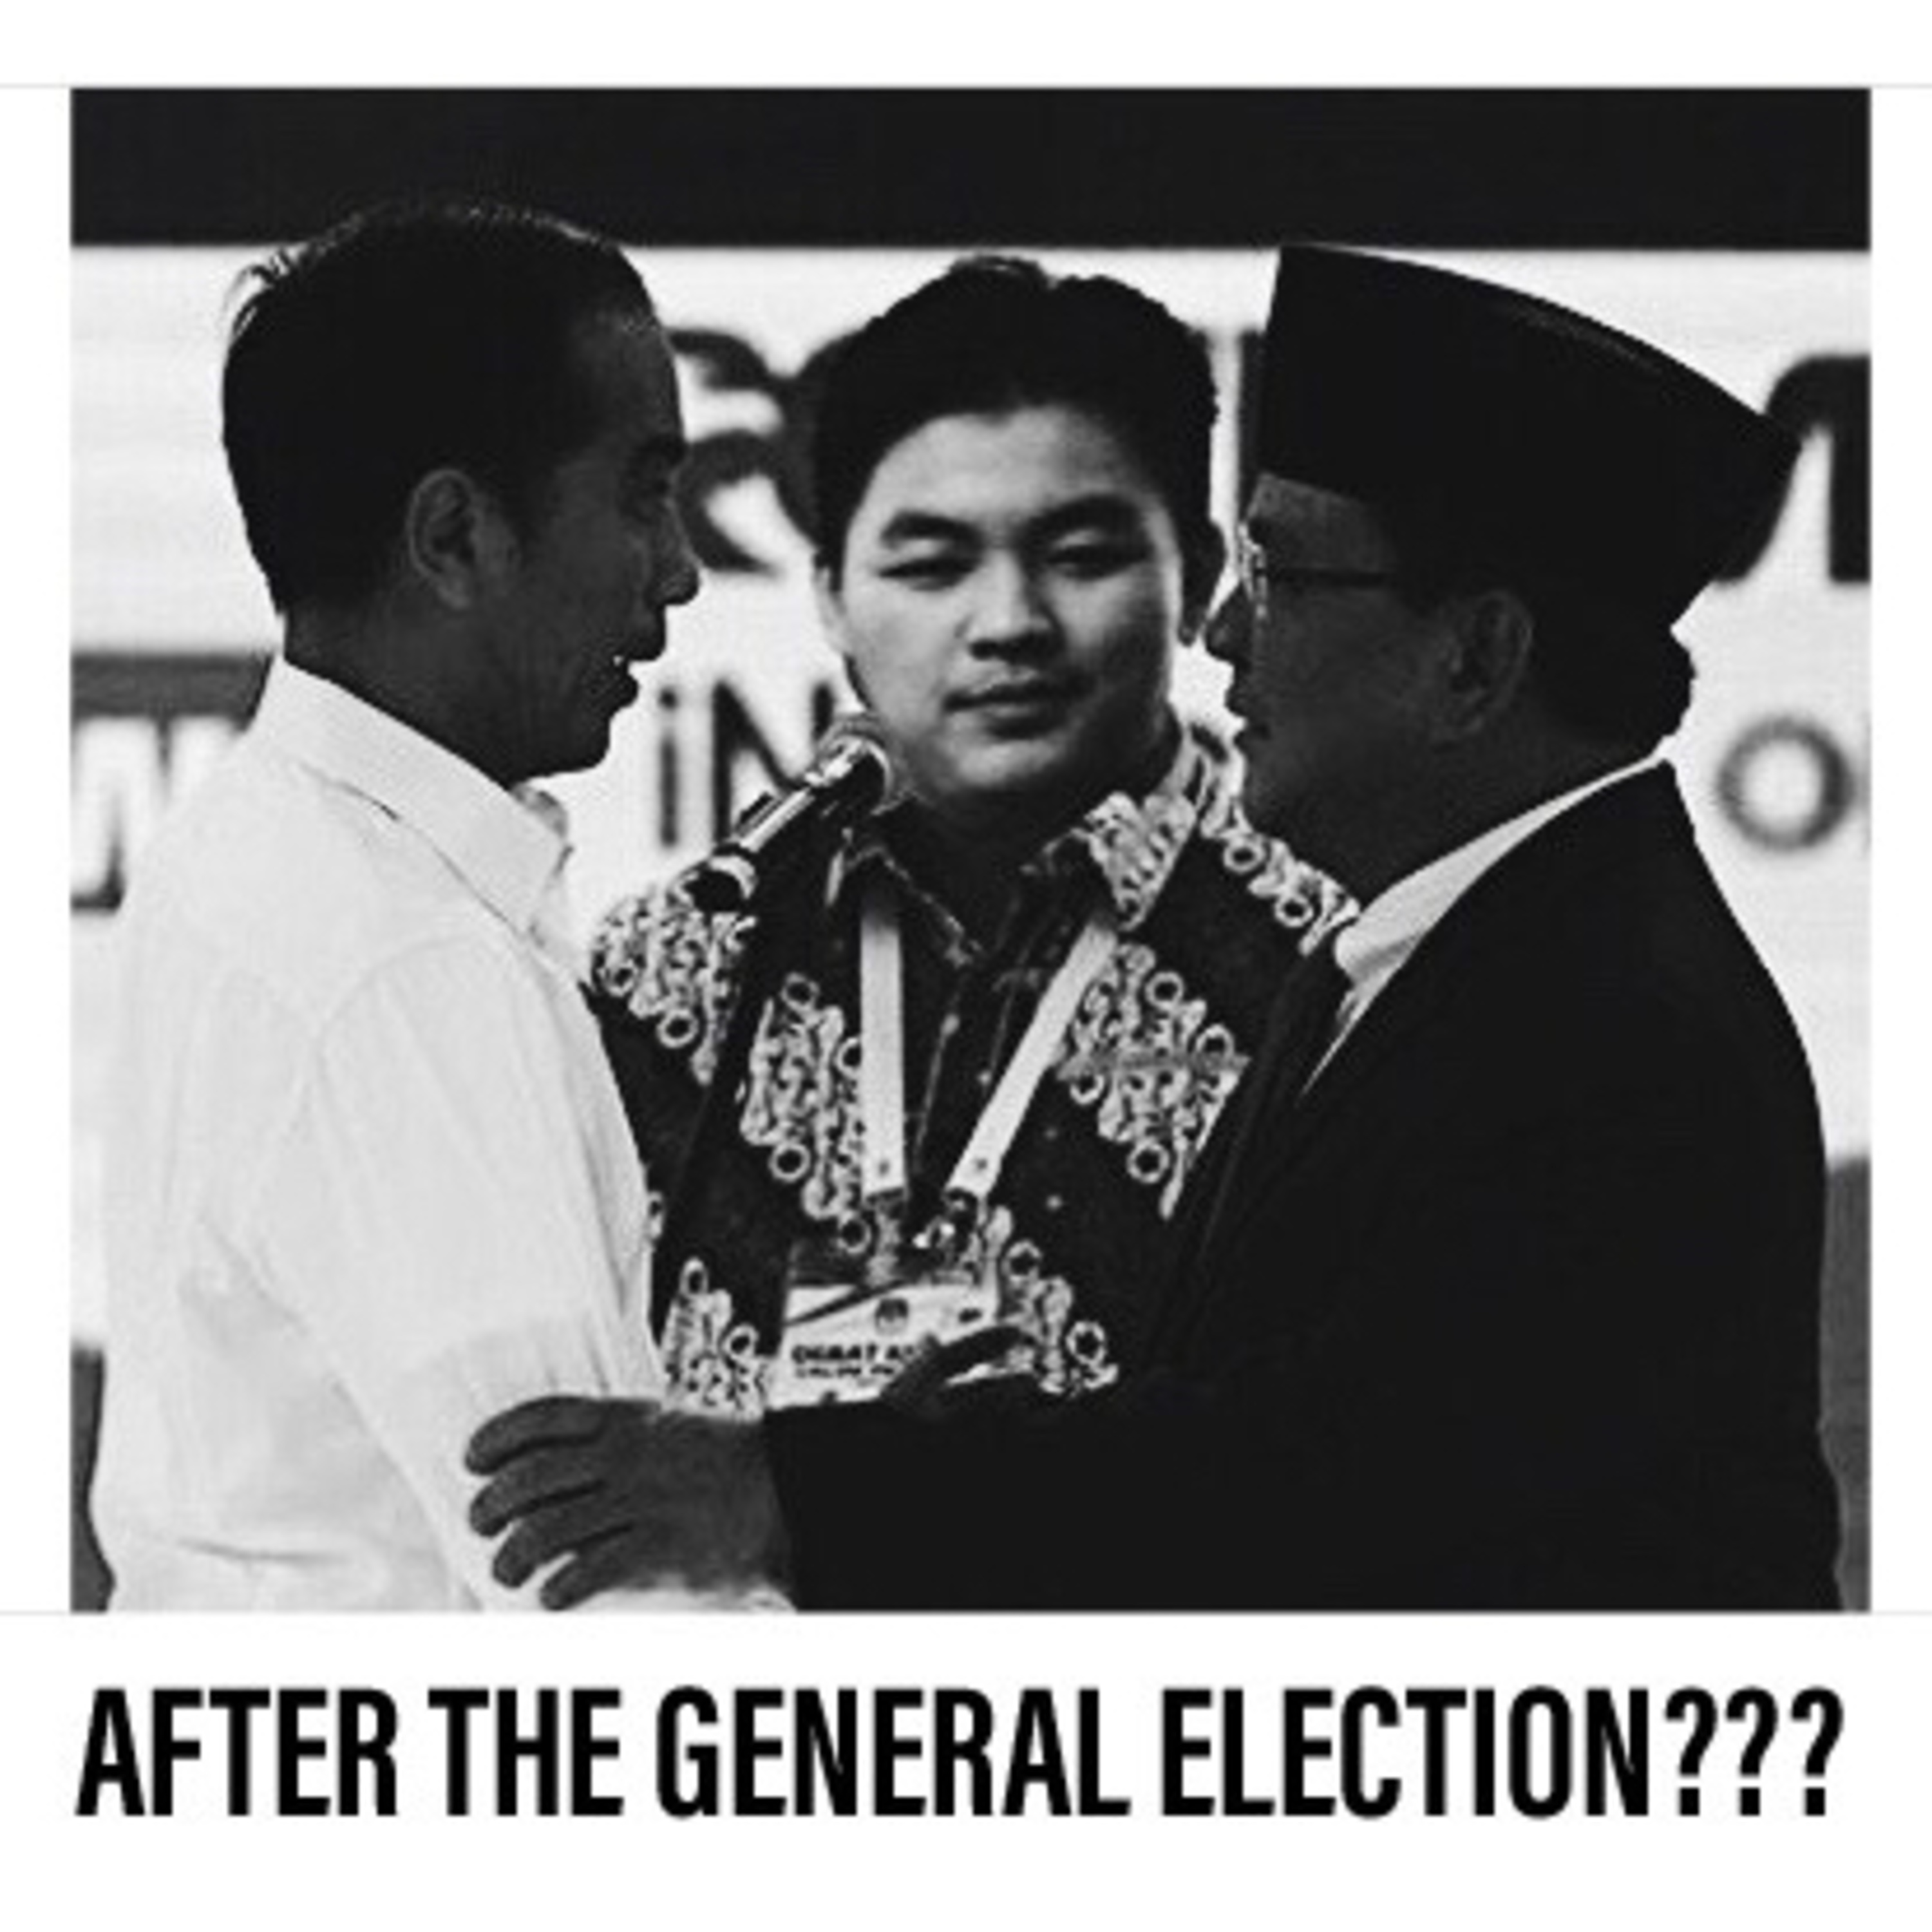 Eps. 01 : After The General Election??? (part 1)